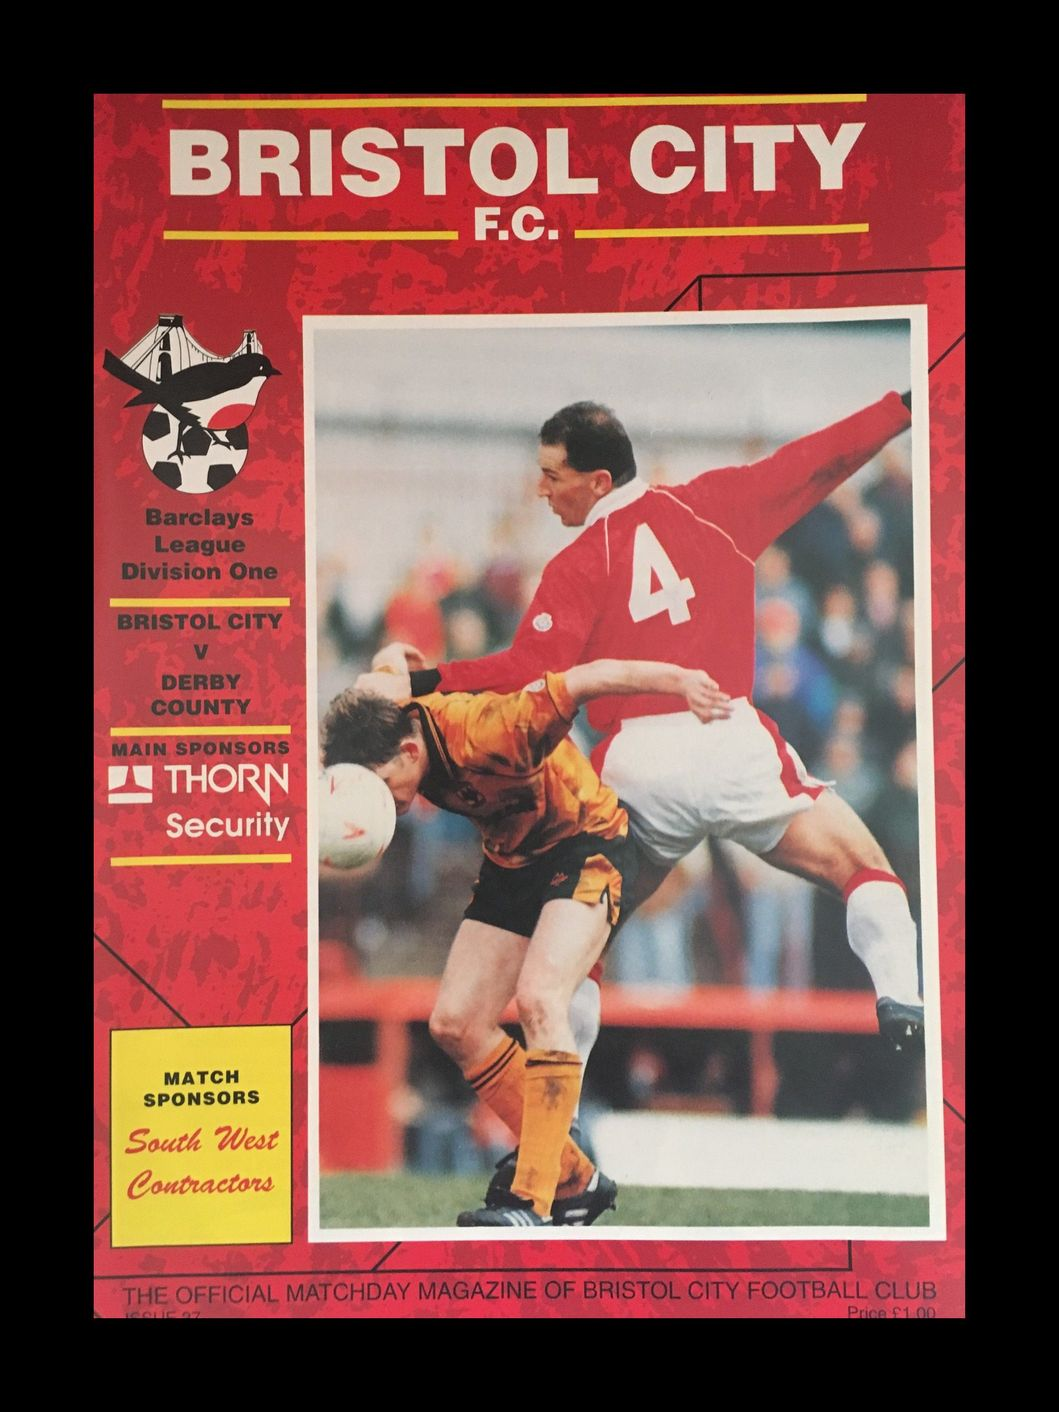 Bristol City v Derby County 20-04-1993 Programme